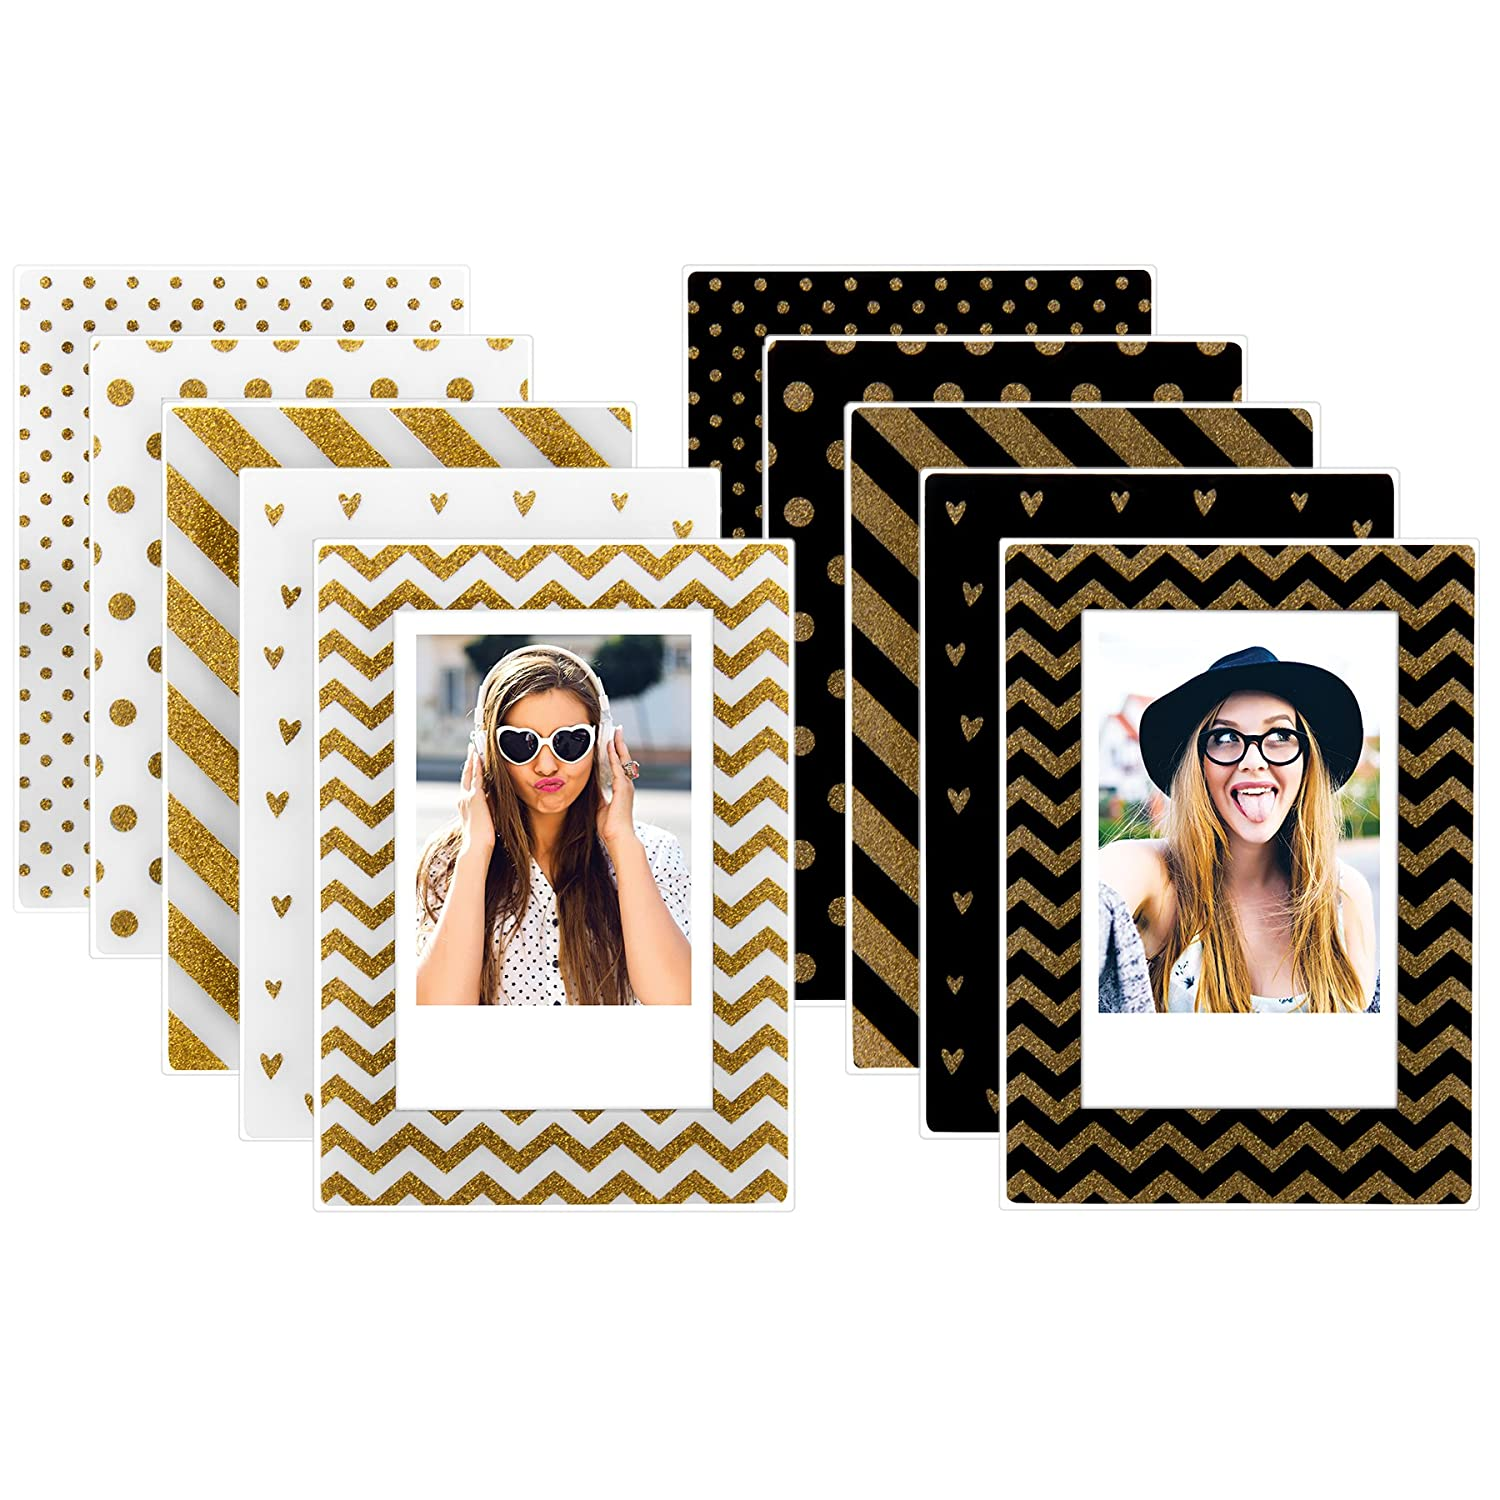 Mini Instax Magnet Photo Frame - 10 Pack Neil Enterprises Inc.